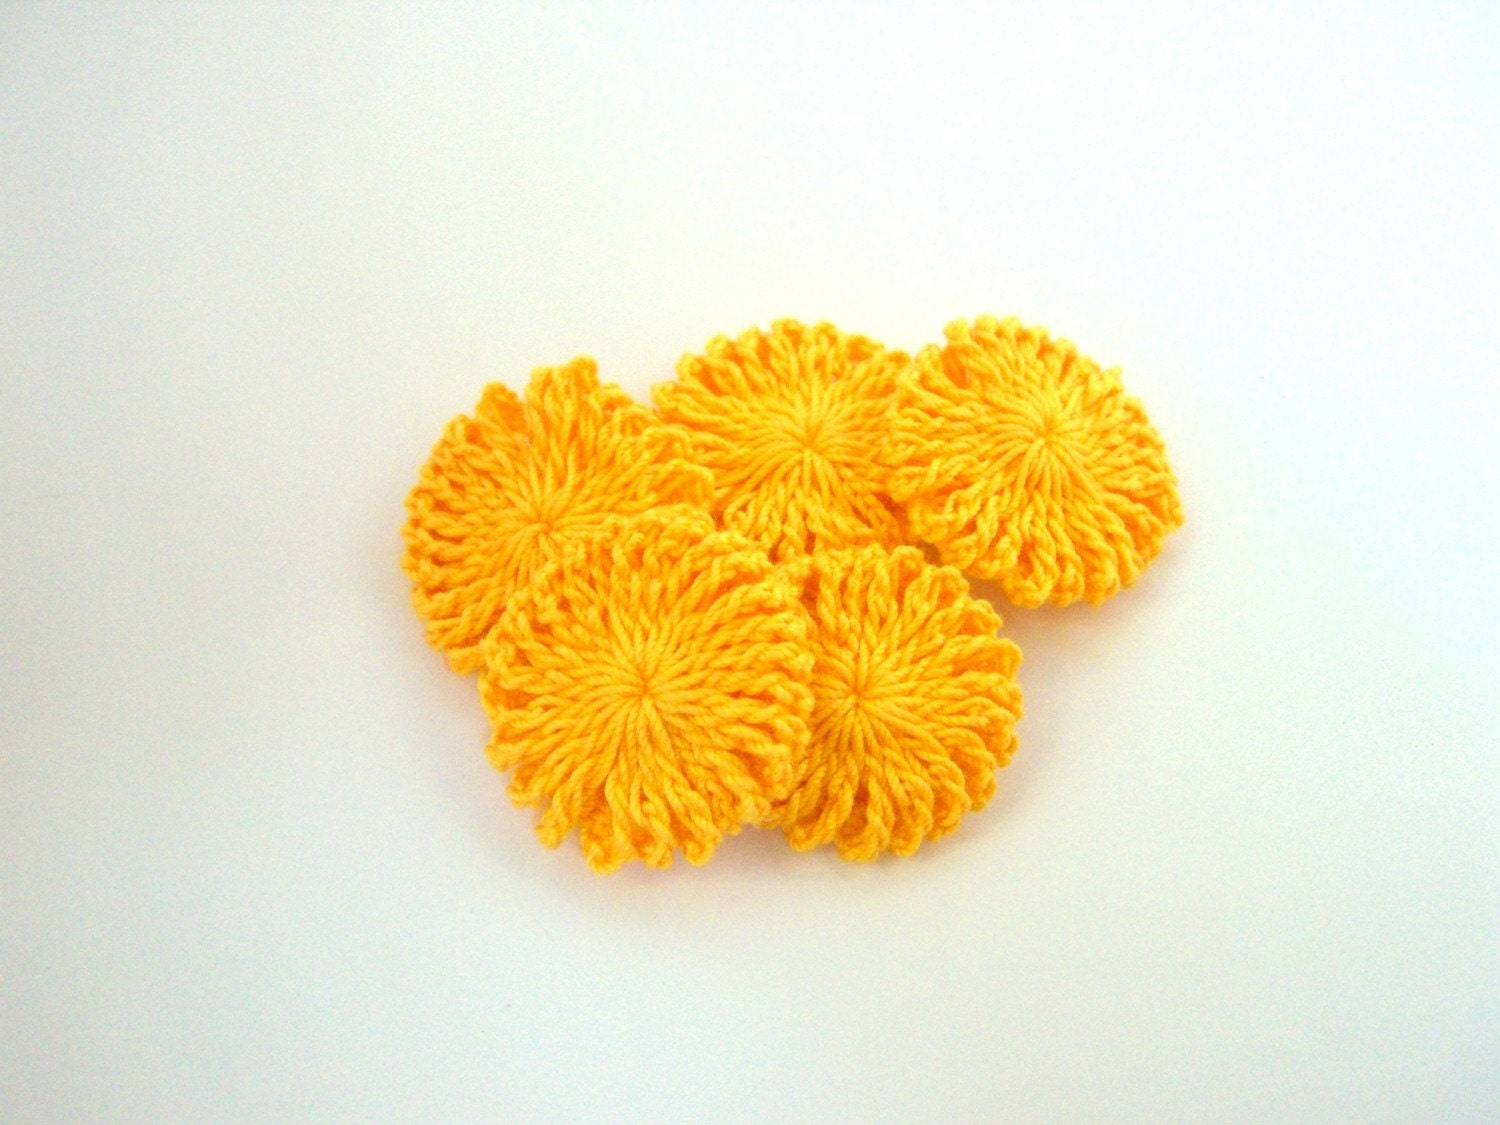 GOLDEN YELLOW CROCHETED YOYO  FOR APPLIQUE by GULTEN on Etsy from etsy.com